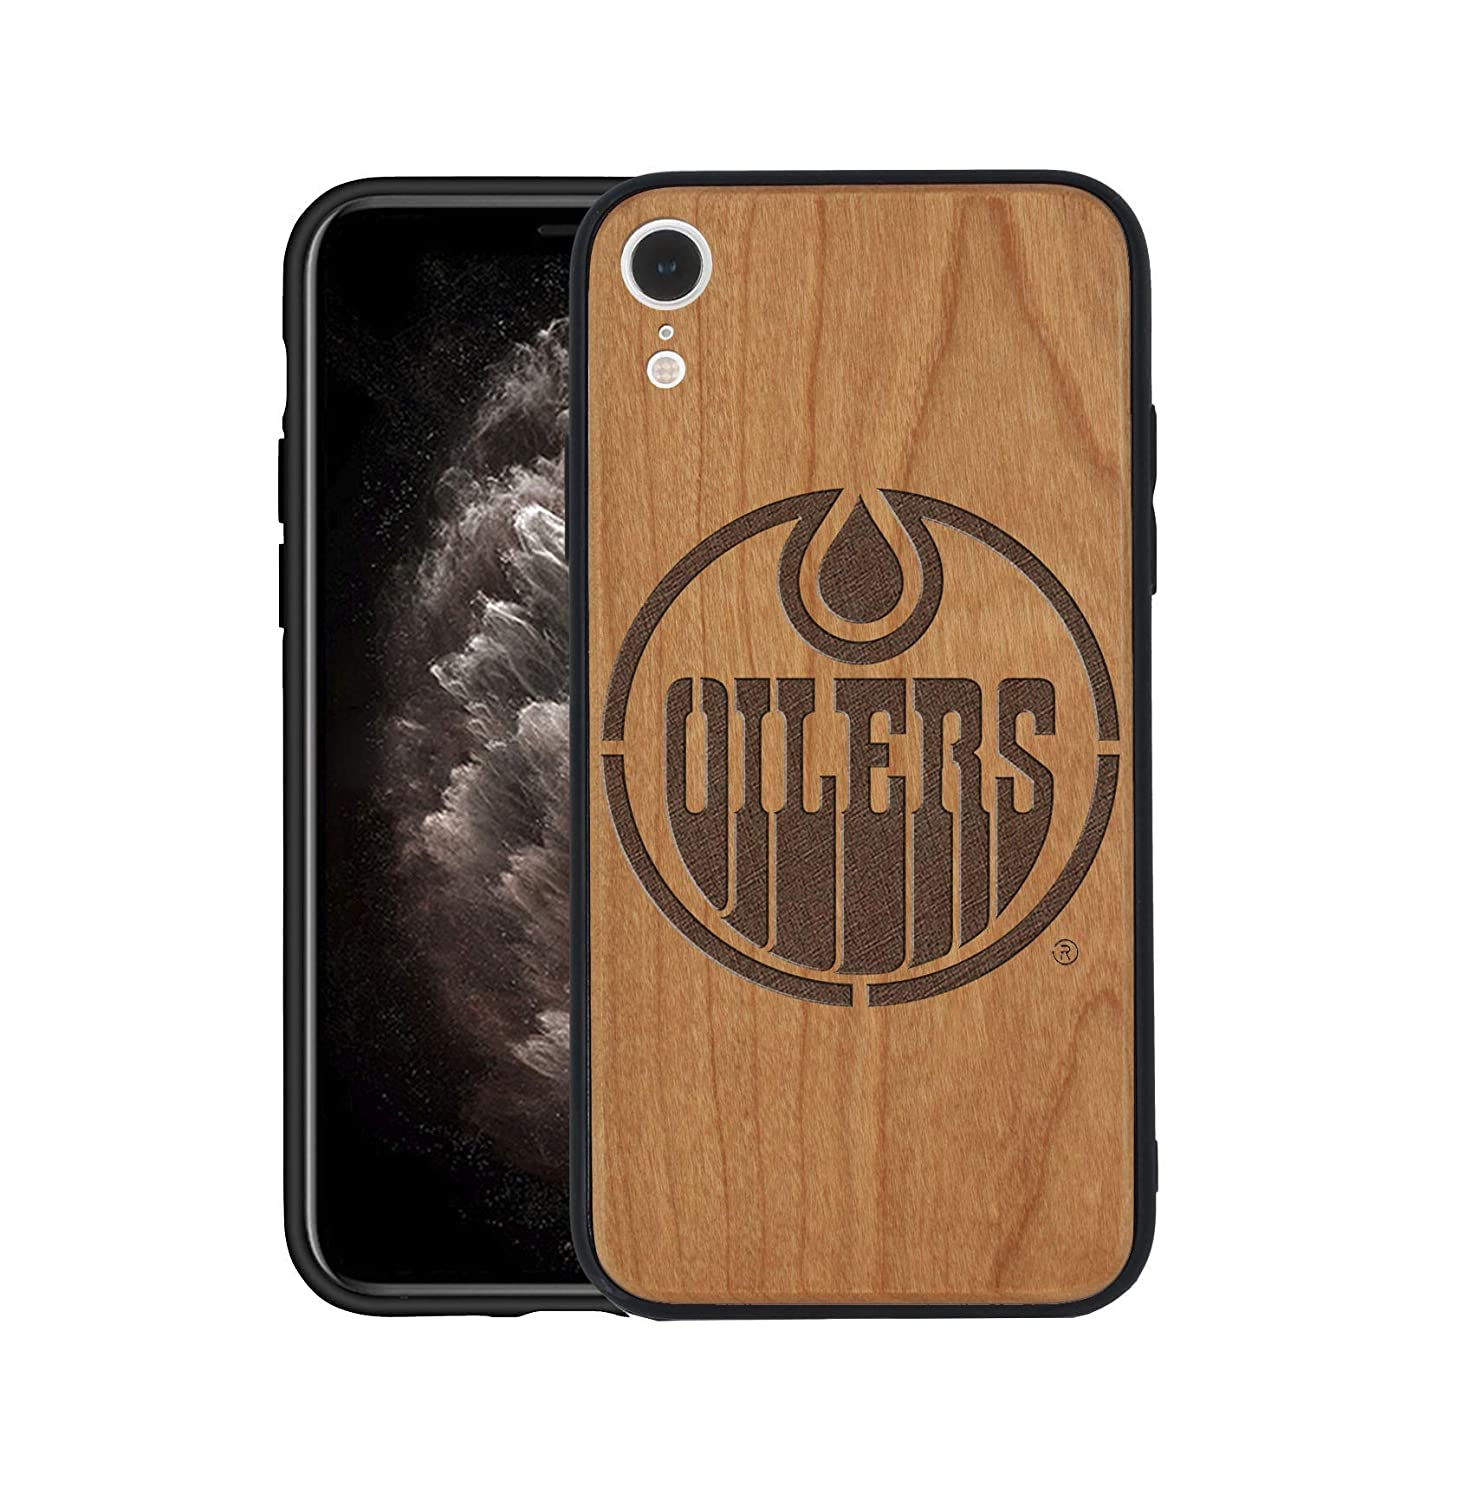 XR Cases Personalized Phone Case Wood Oilers Case for iPhone 11 11 Pro Xs Max 11 Pro Max X Xs